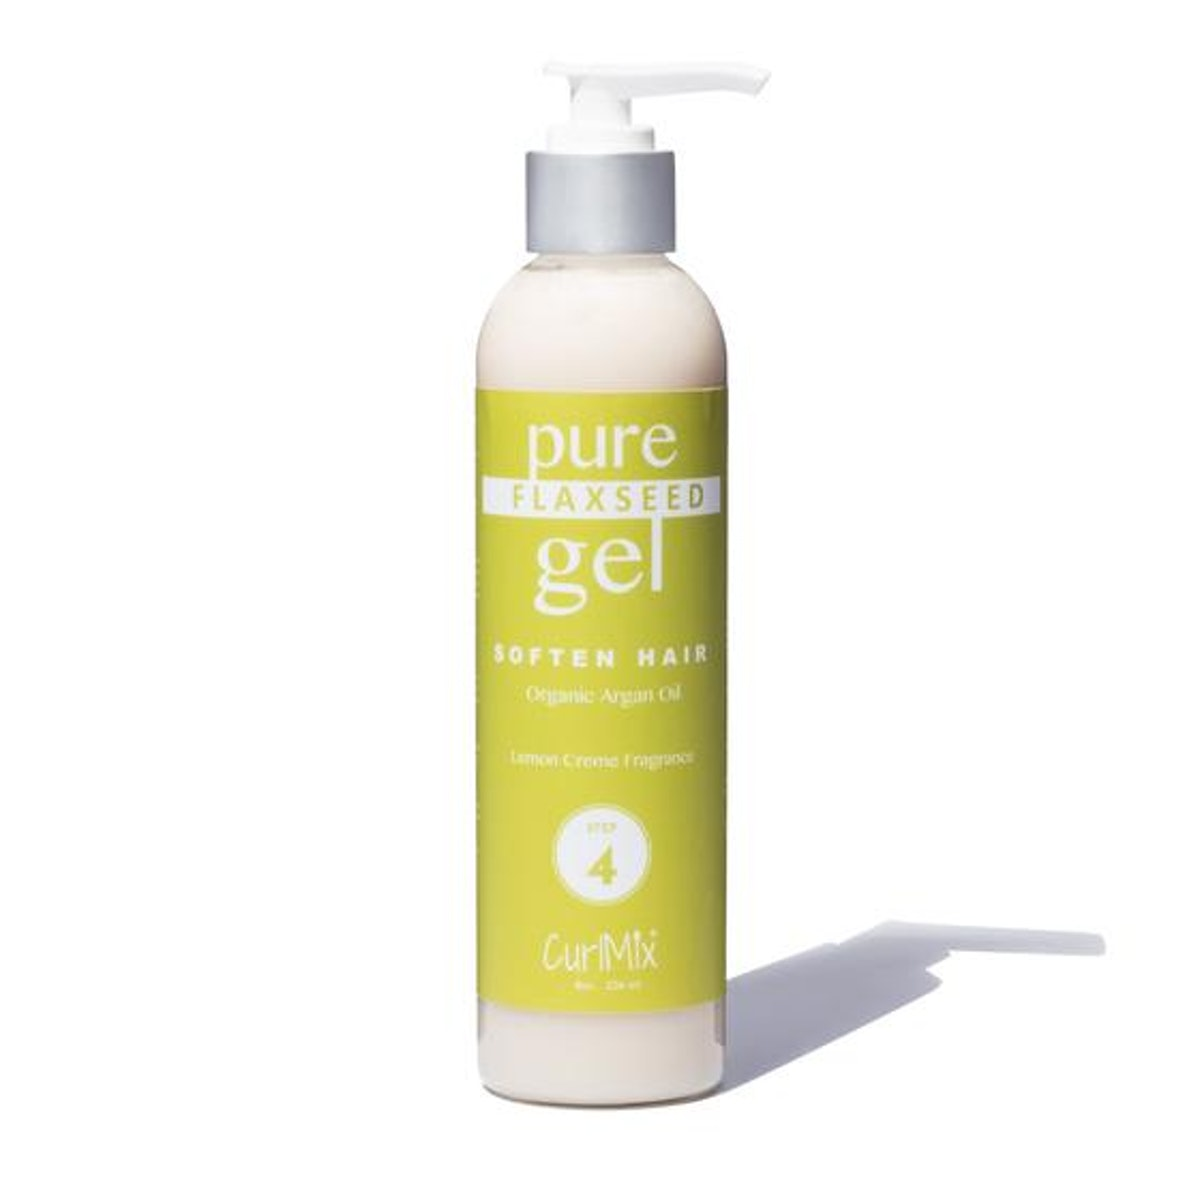 Pure Flaxseed Gel with Organic Argan Oil for Softening & Lemon Creme Fragrance